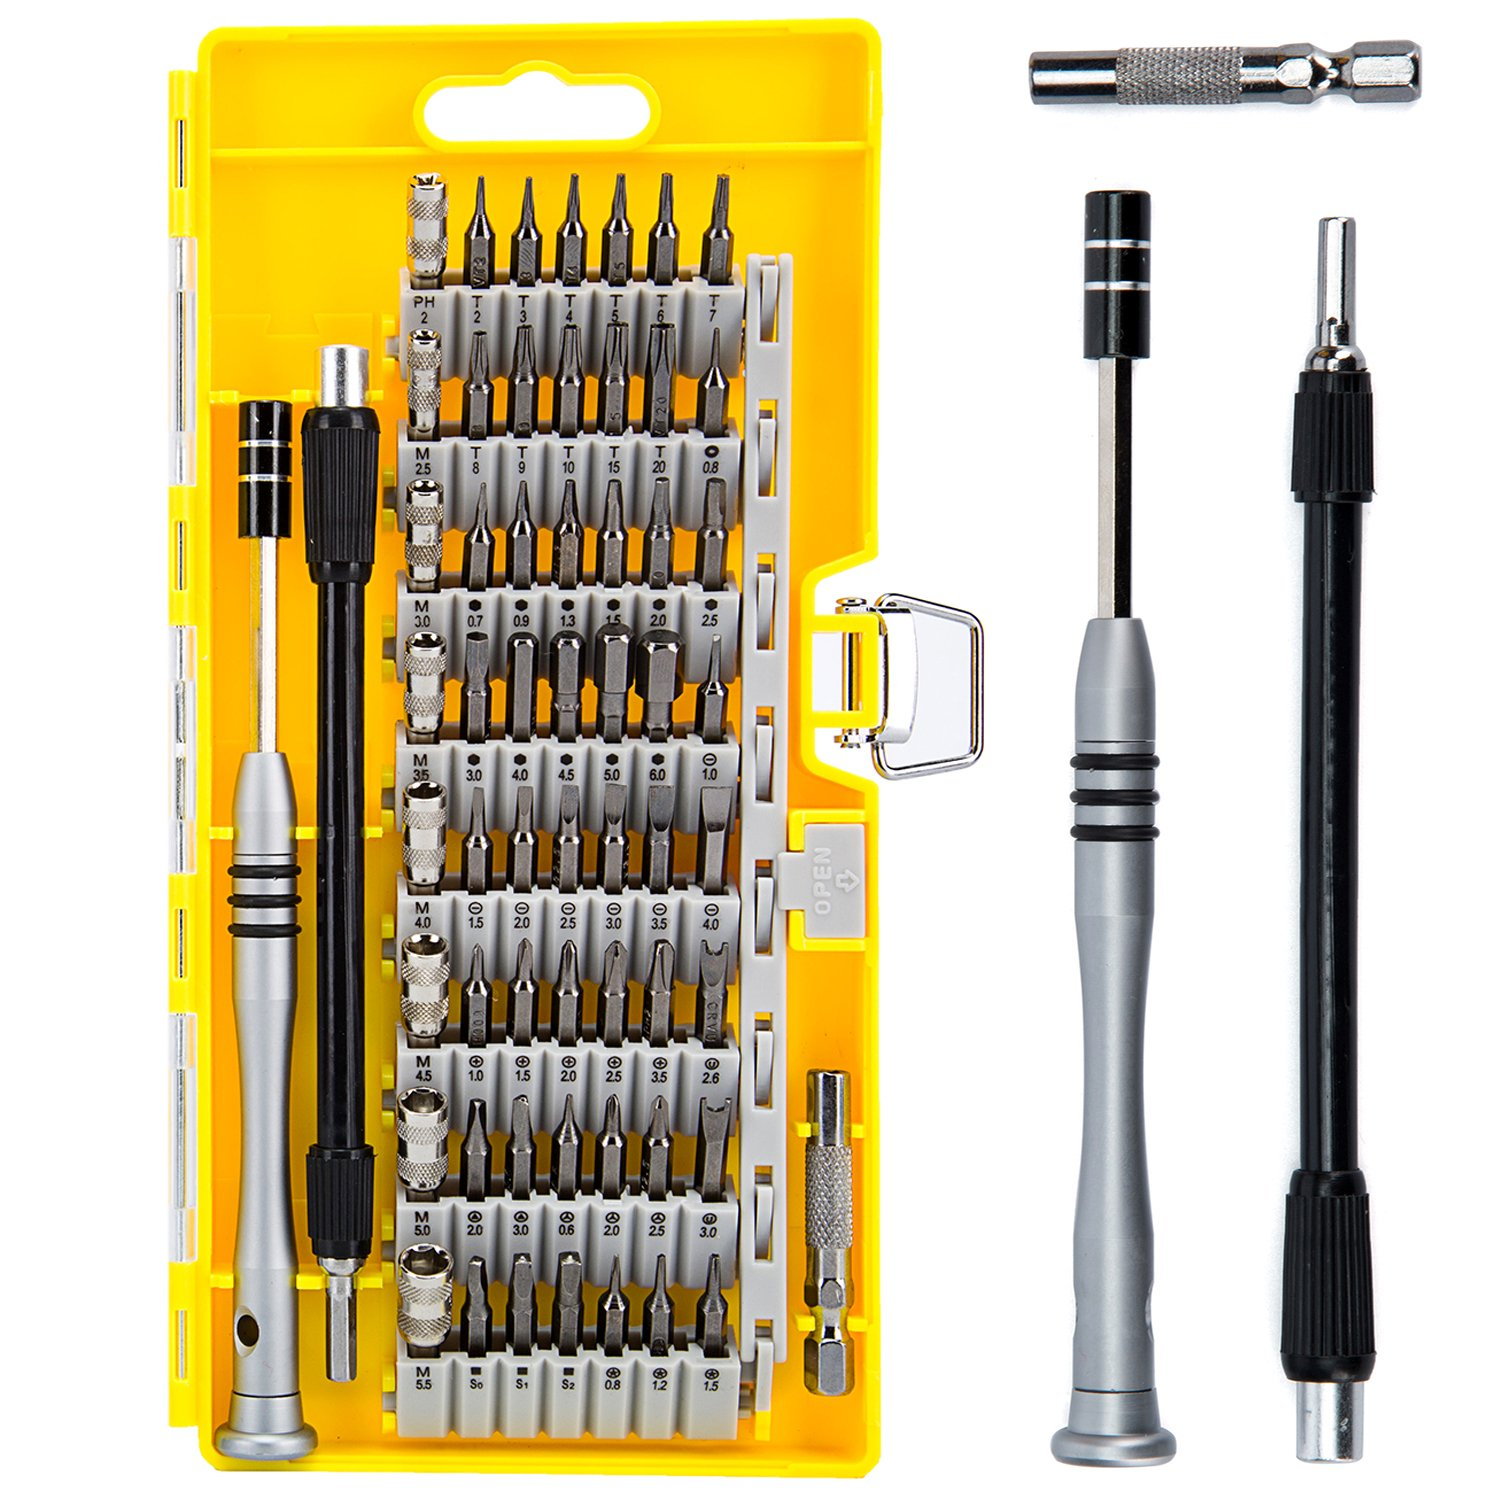 Screwdriver Set, Magnetic Driver Kit, 60 in 1 with 56 Bit Precision Screwdriver Set for iPhone, Xbox, Tablet, PC, Macbook, Electronics Repair Tool Kit by NUOYIGAOGE